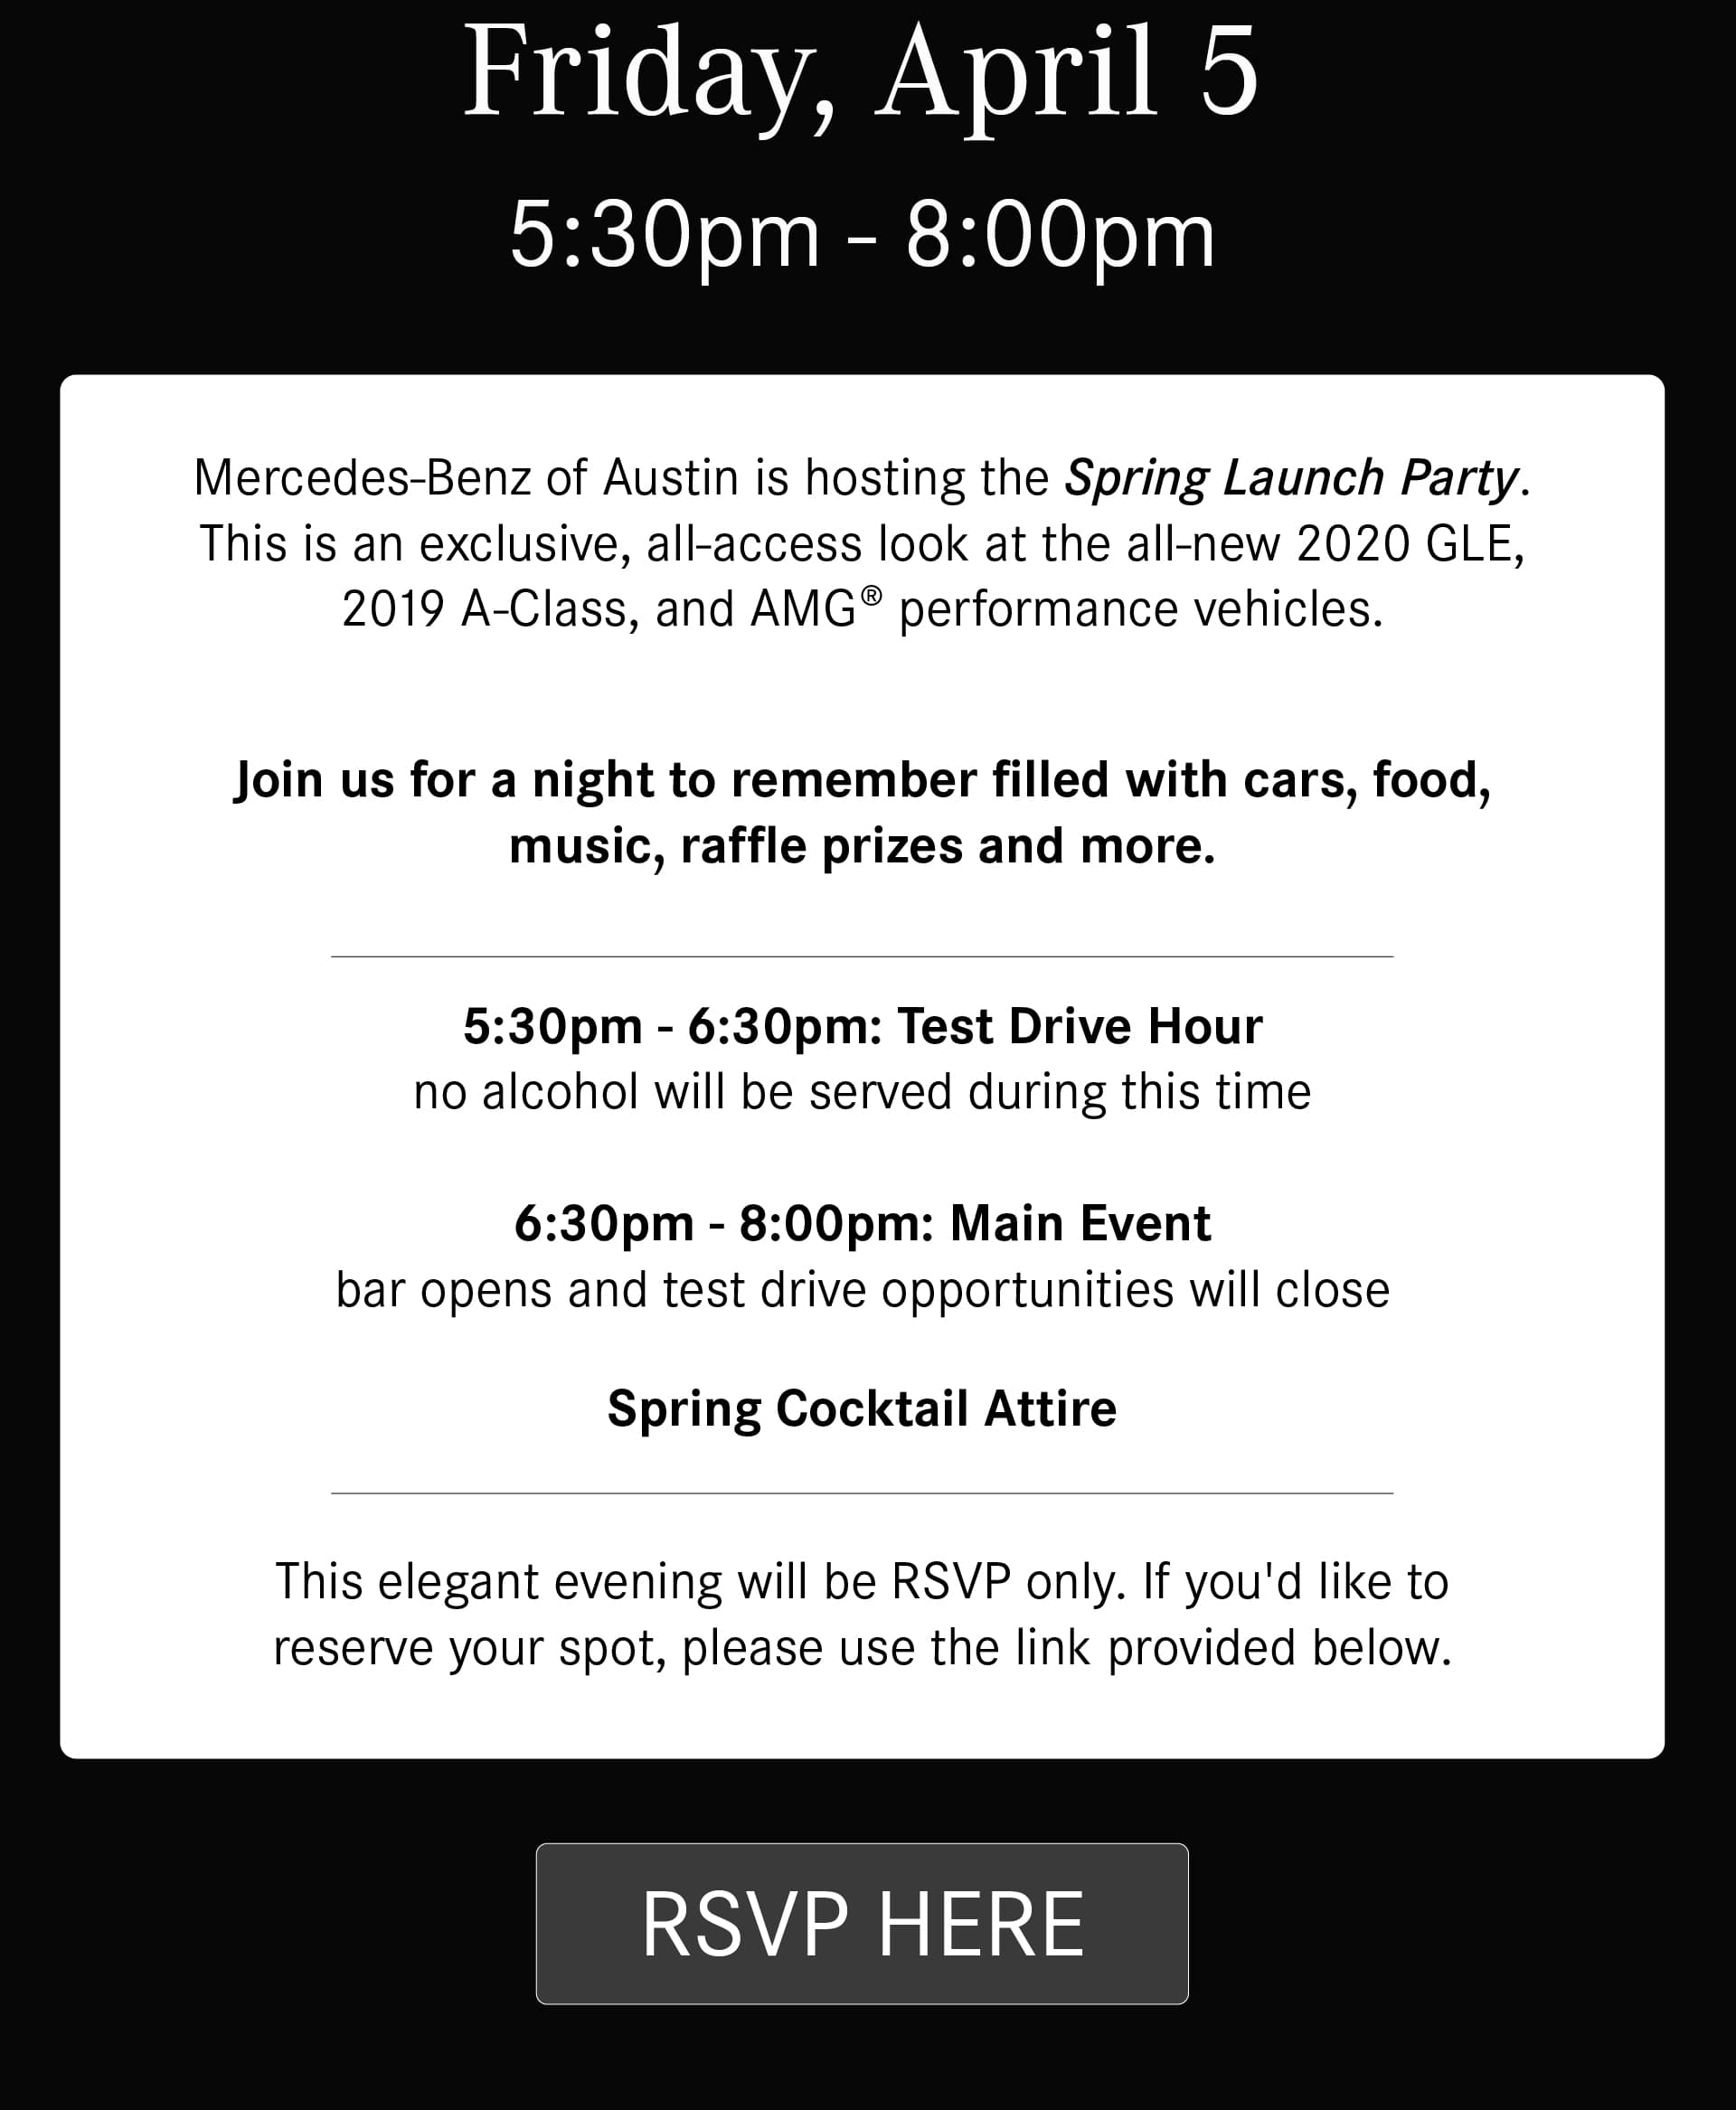 Mercedes-Benz of Austin Spring Launch Party